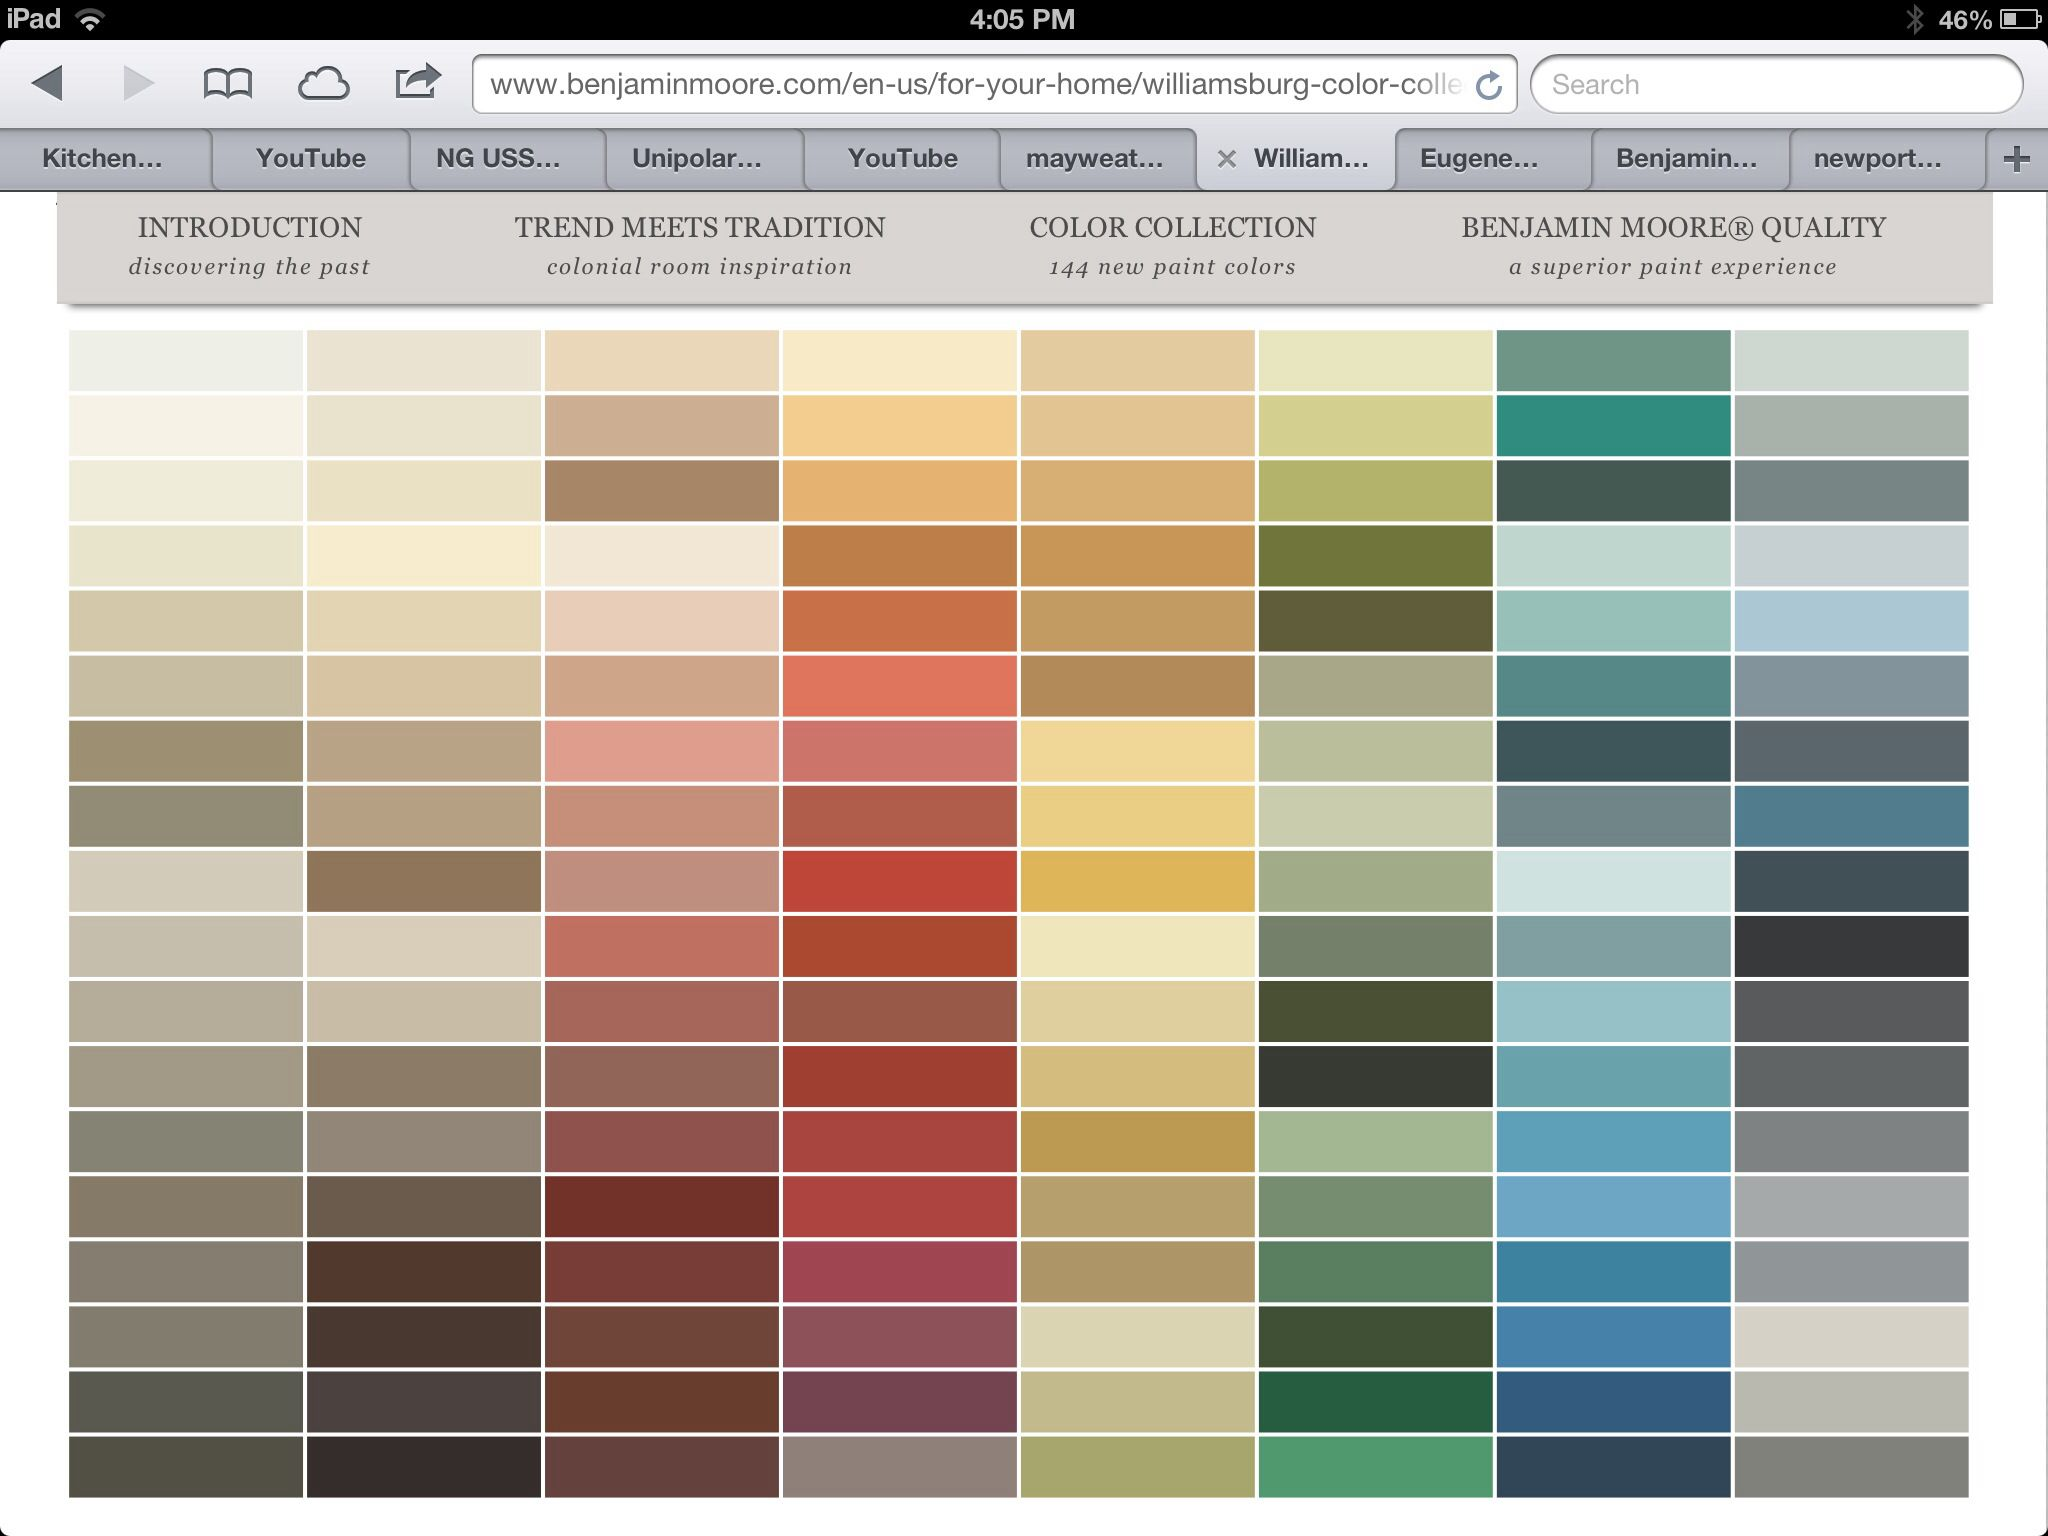 Benjamin moore paint colors chart ben moore color chart images free any chart examples nvjuhfo Choice Image